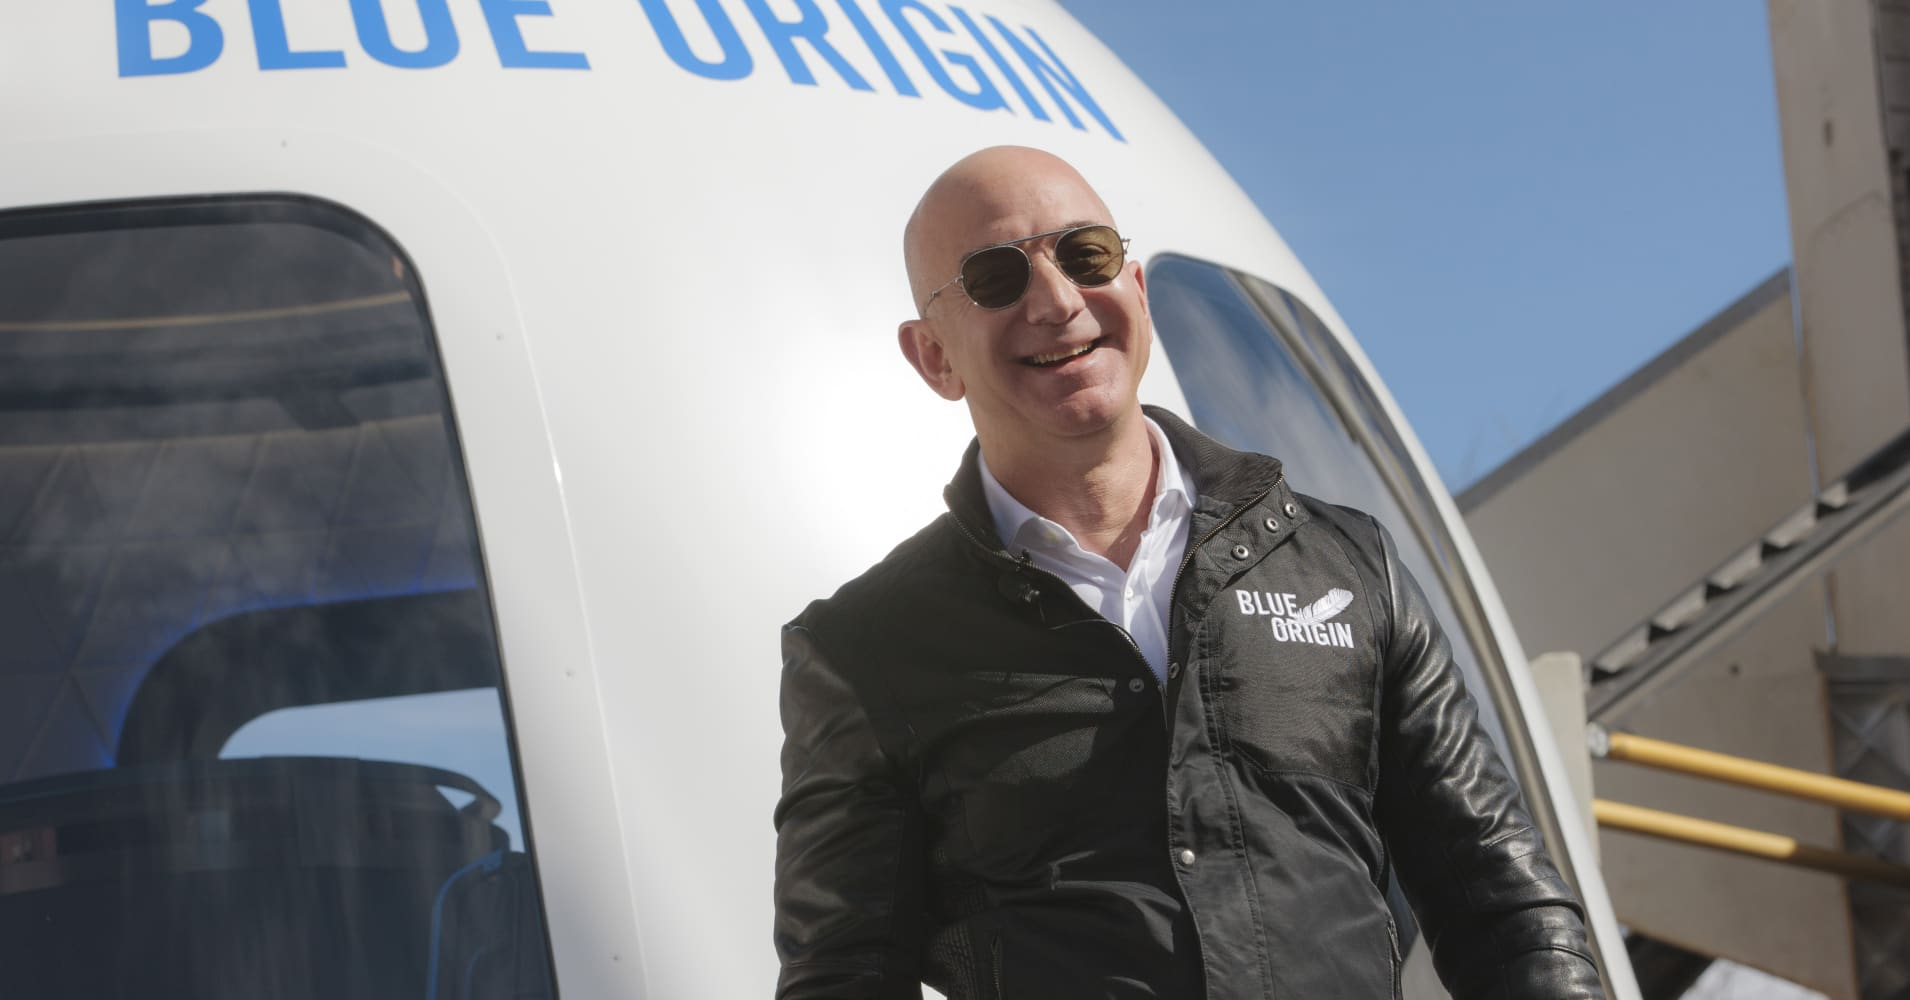 Jeff Bezos explains why Blue Origin is 'the most important work I'm doing'